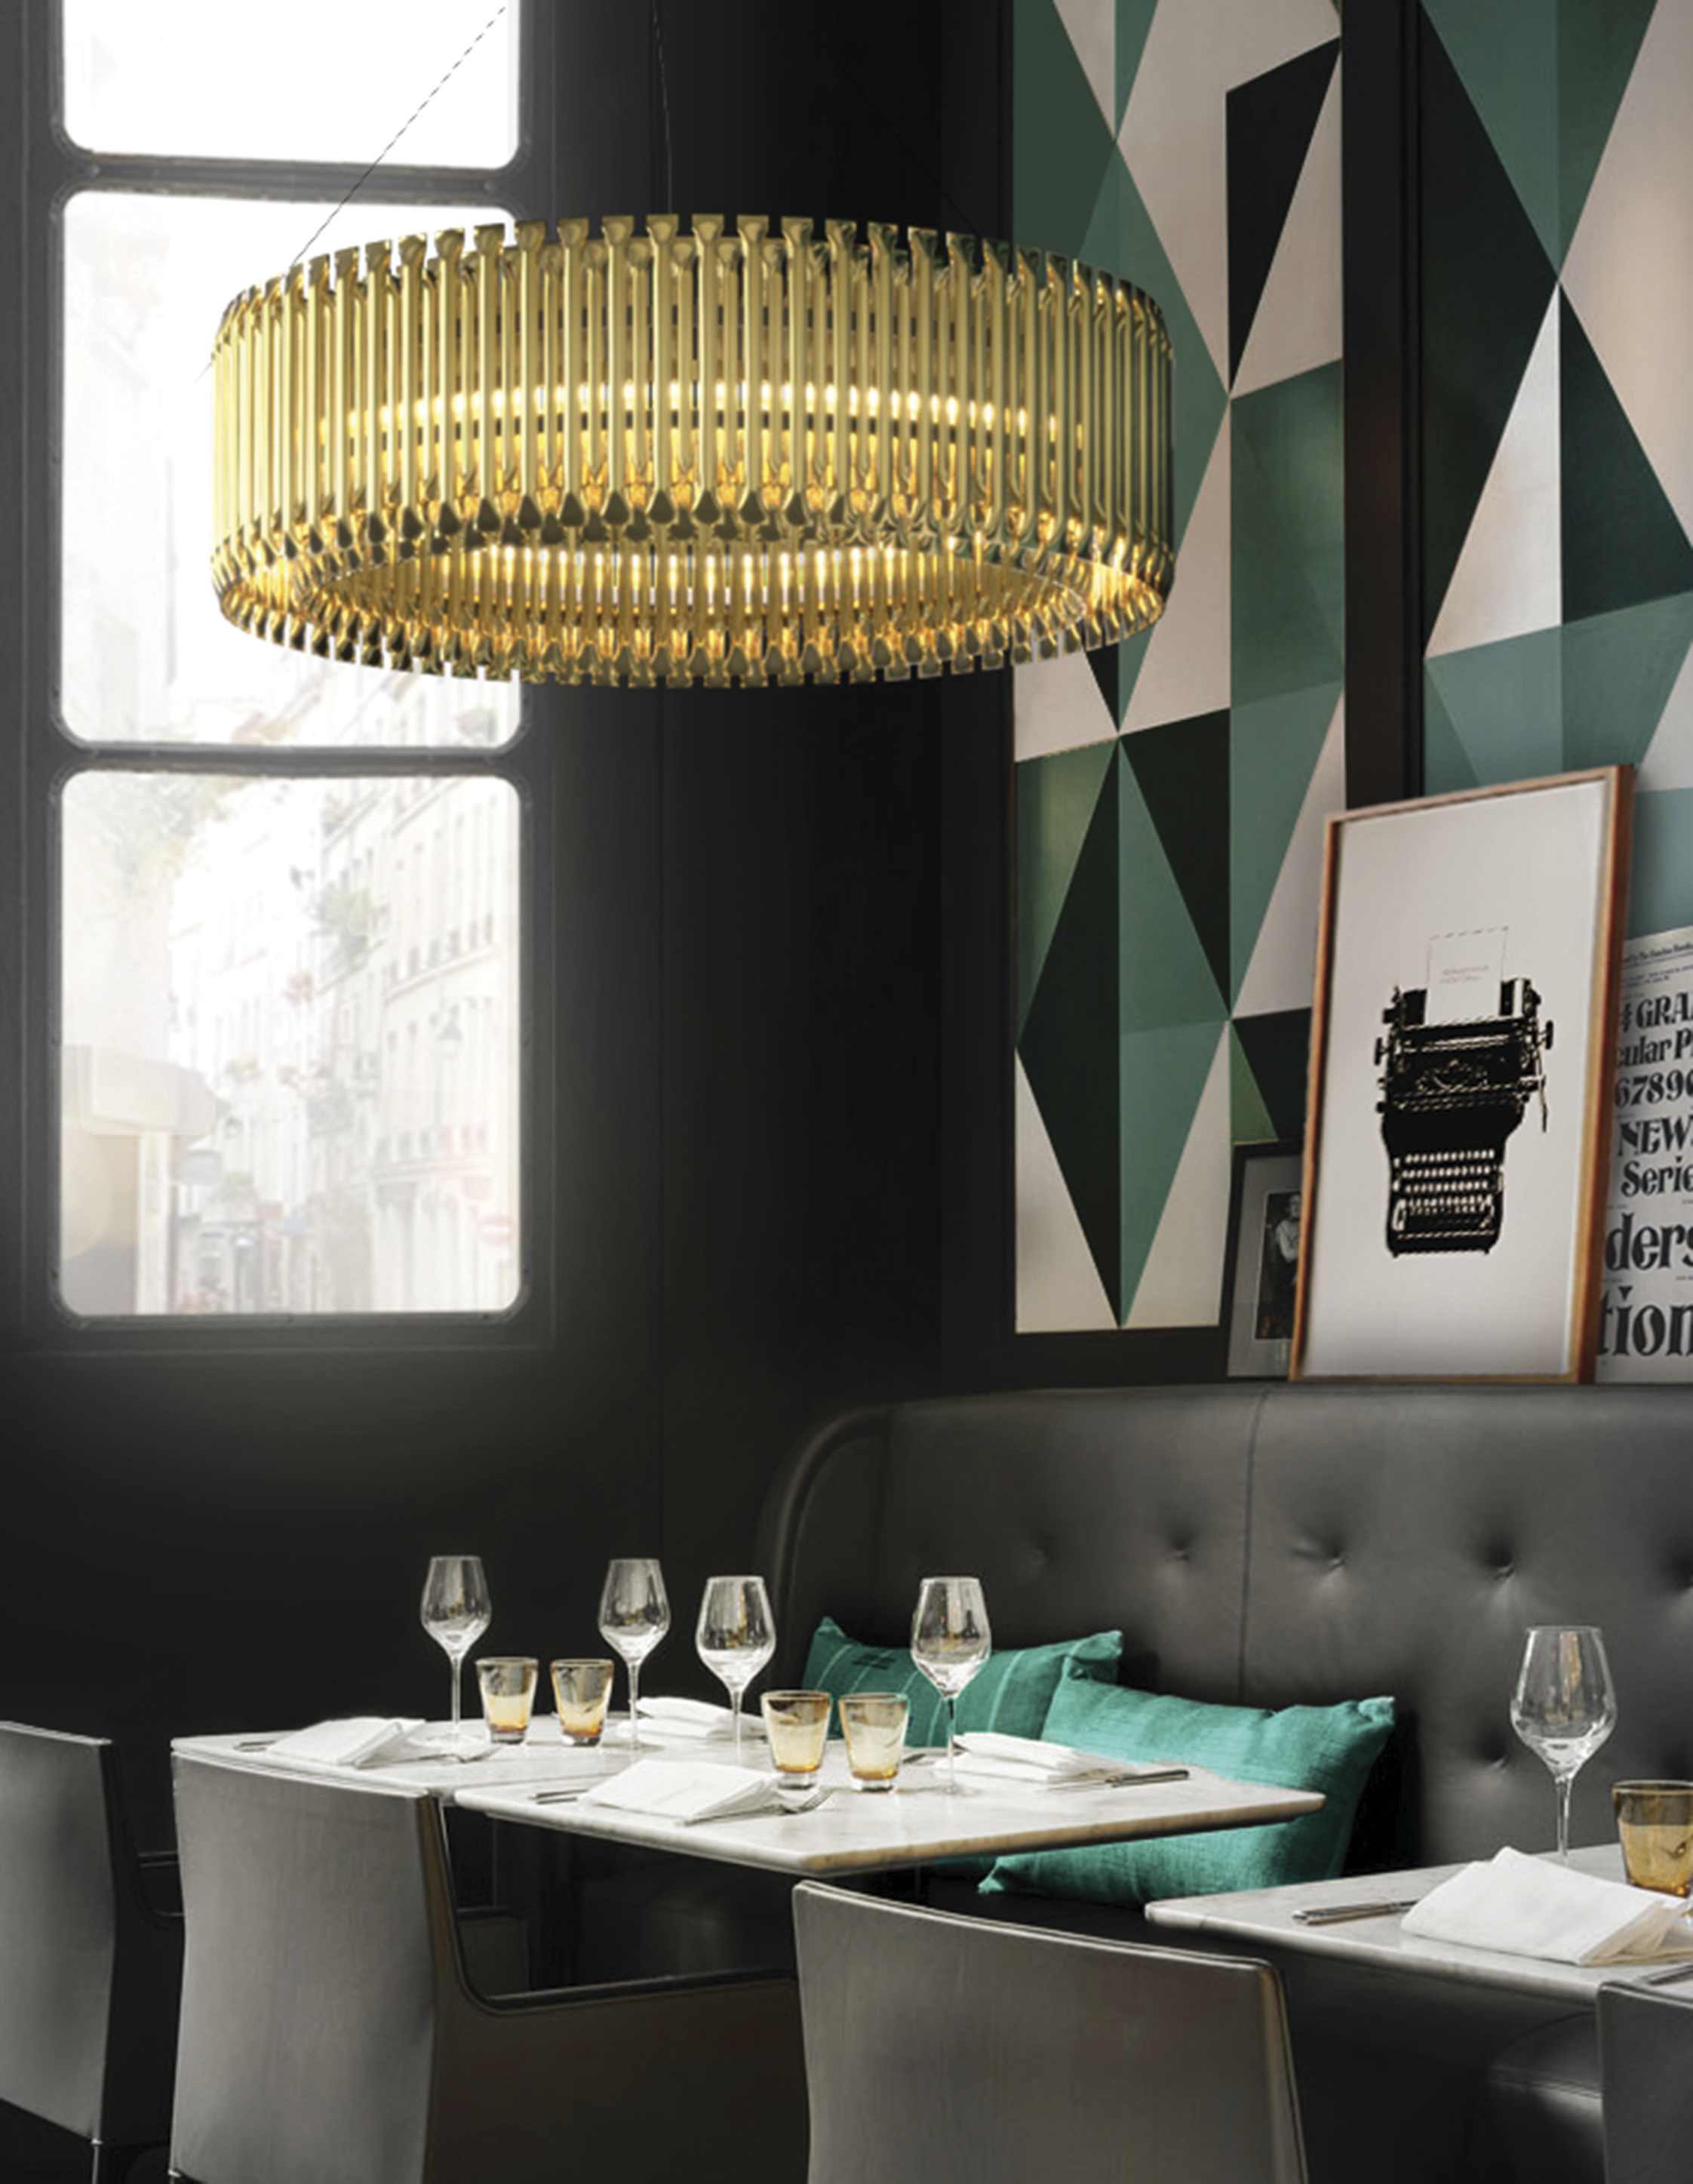 Make the Most of Your Restaurant Decor with These Lighting Designs (2) lighting design Make the Most of Your Restaurant Decor with These Lighting Designs Make the Most of Your Restaurant Decor with These Lighting Designs 4